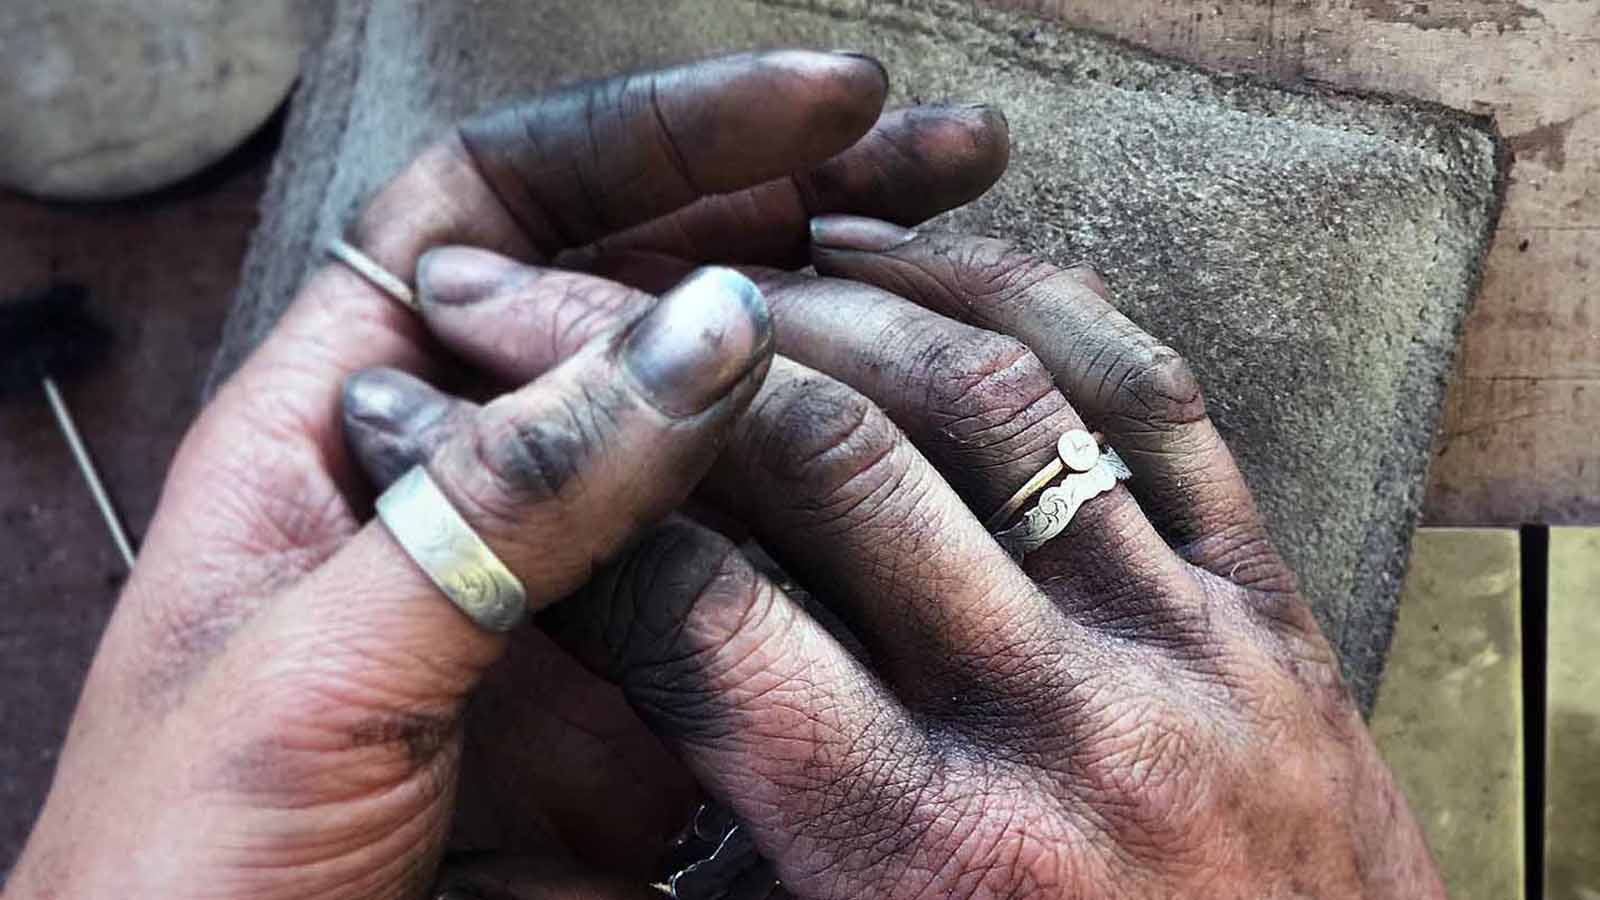 The hands of a craftsman reflect hours and years of hardwork making cowboy crafts.